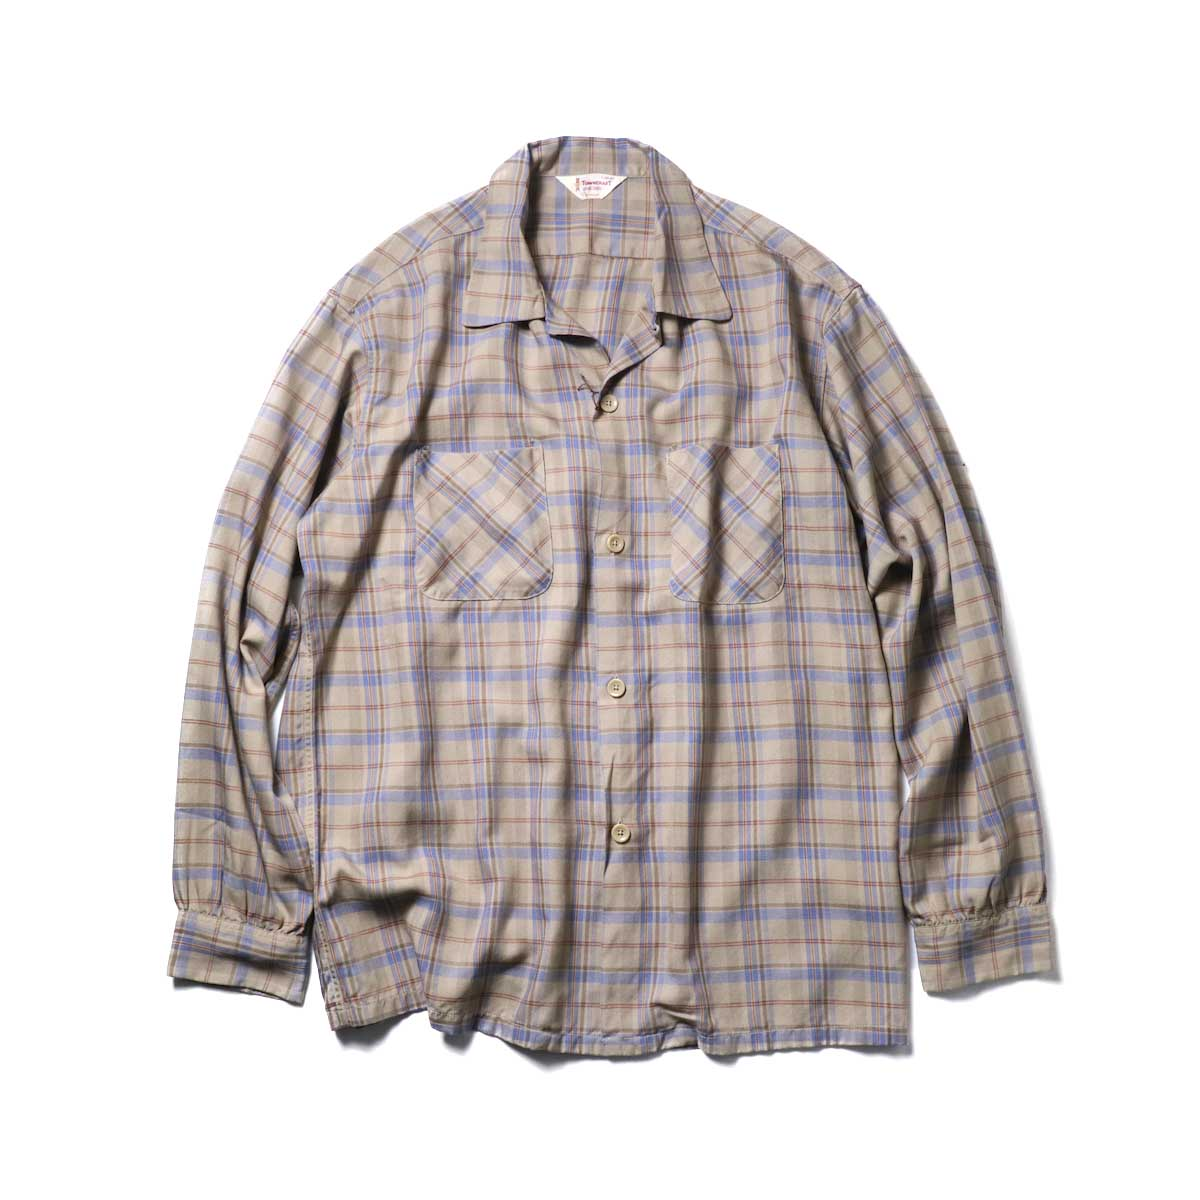 TOWN CRAFT / CLASSIC CHECK OPEN SHIRTS (Beige)正面